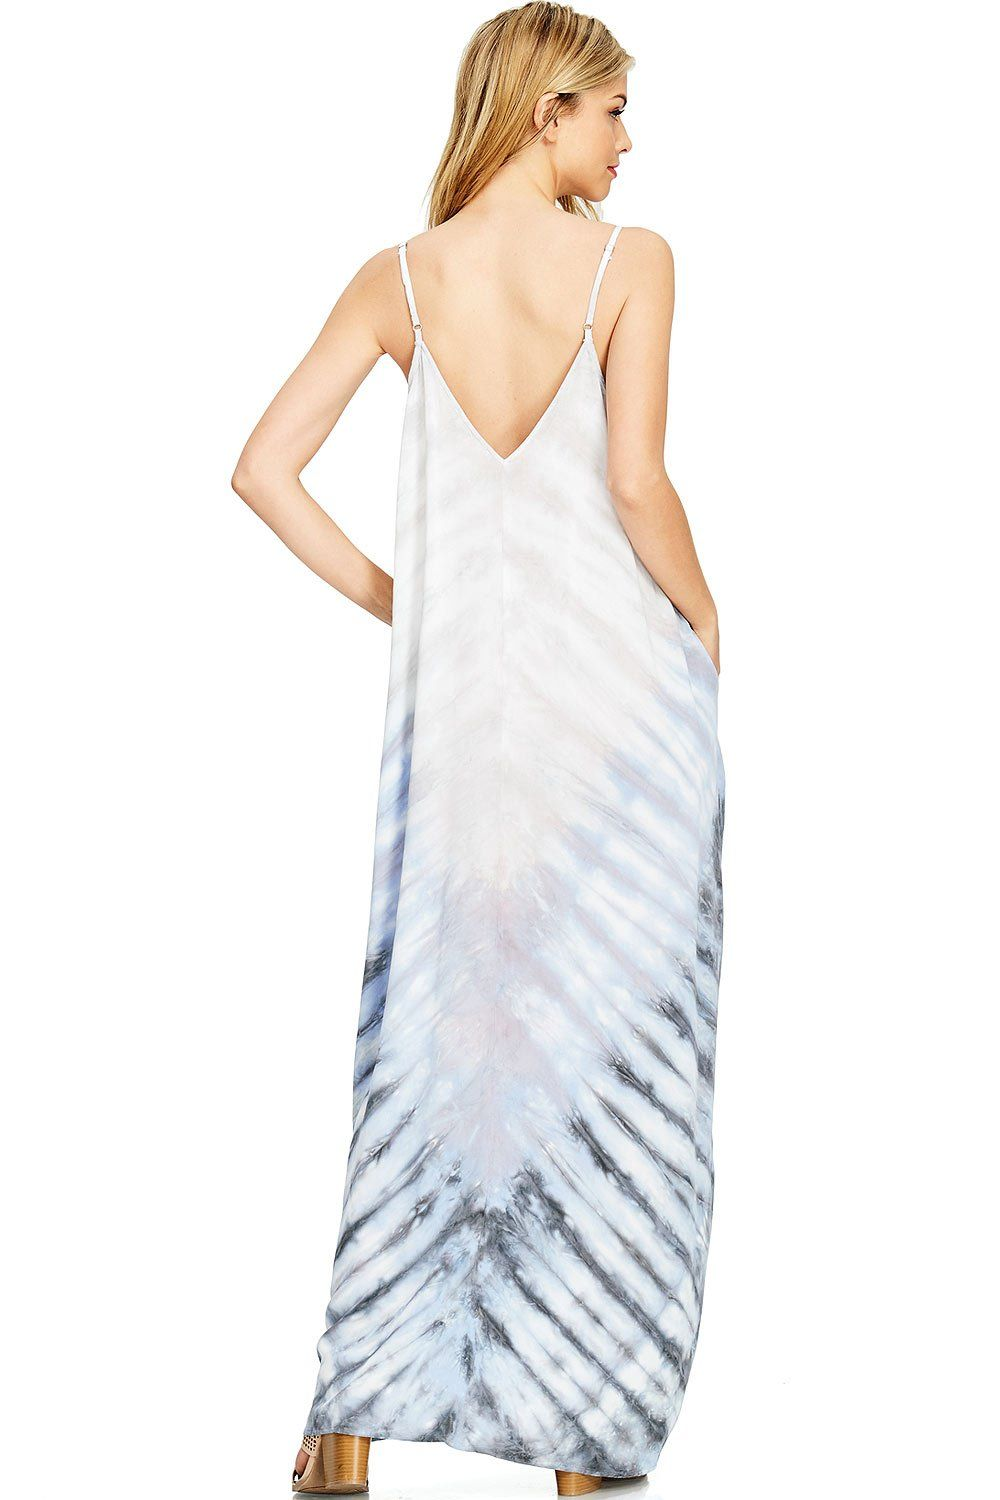 1ebe1d13f0 Light and airy maxi dress with a front and back V-neckline and a whimsical  pastel tie-dye design. Harem fit with pockets at the sides and adjustable  straps.